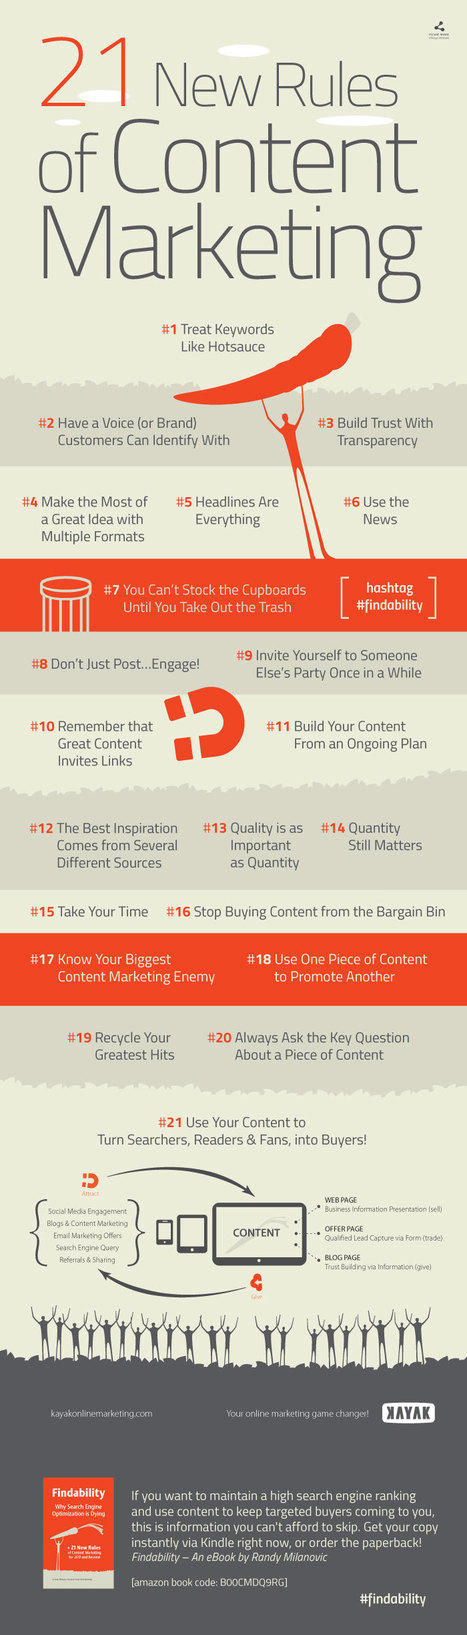 The 21 New Rules of Content Marketing [INFOGRAPHIC] | CRM & MARKETING DIGITAL | Scoop.it